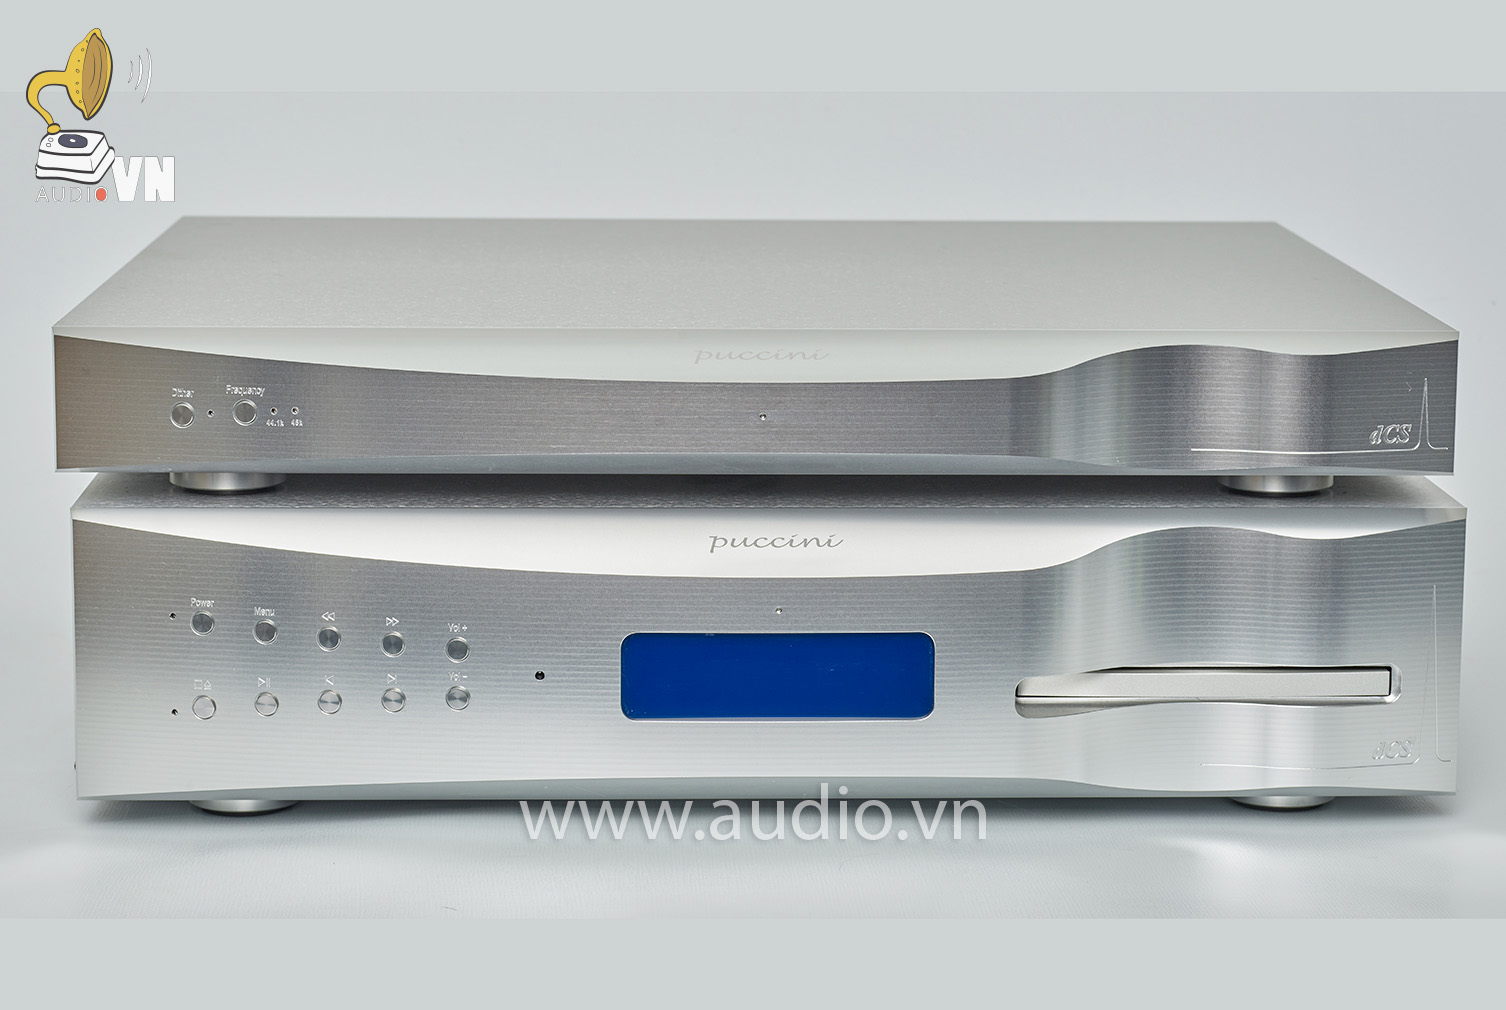 Đầu CD/SACD Hi-end DCS Puccini CD/SACD